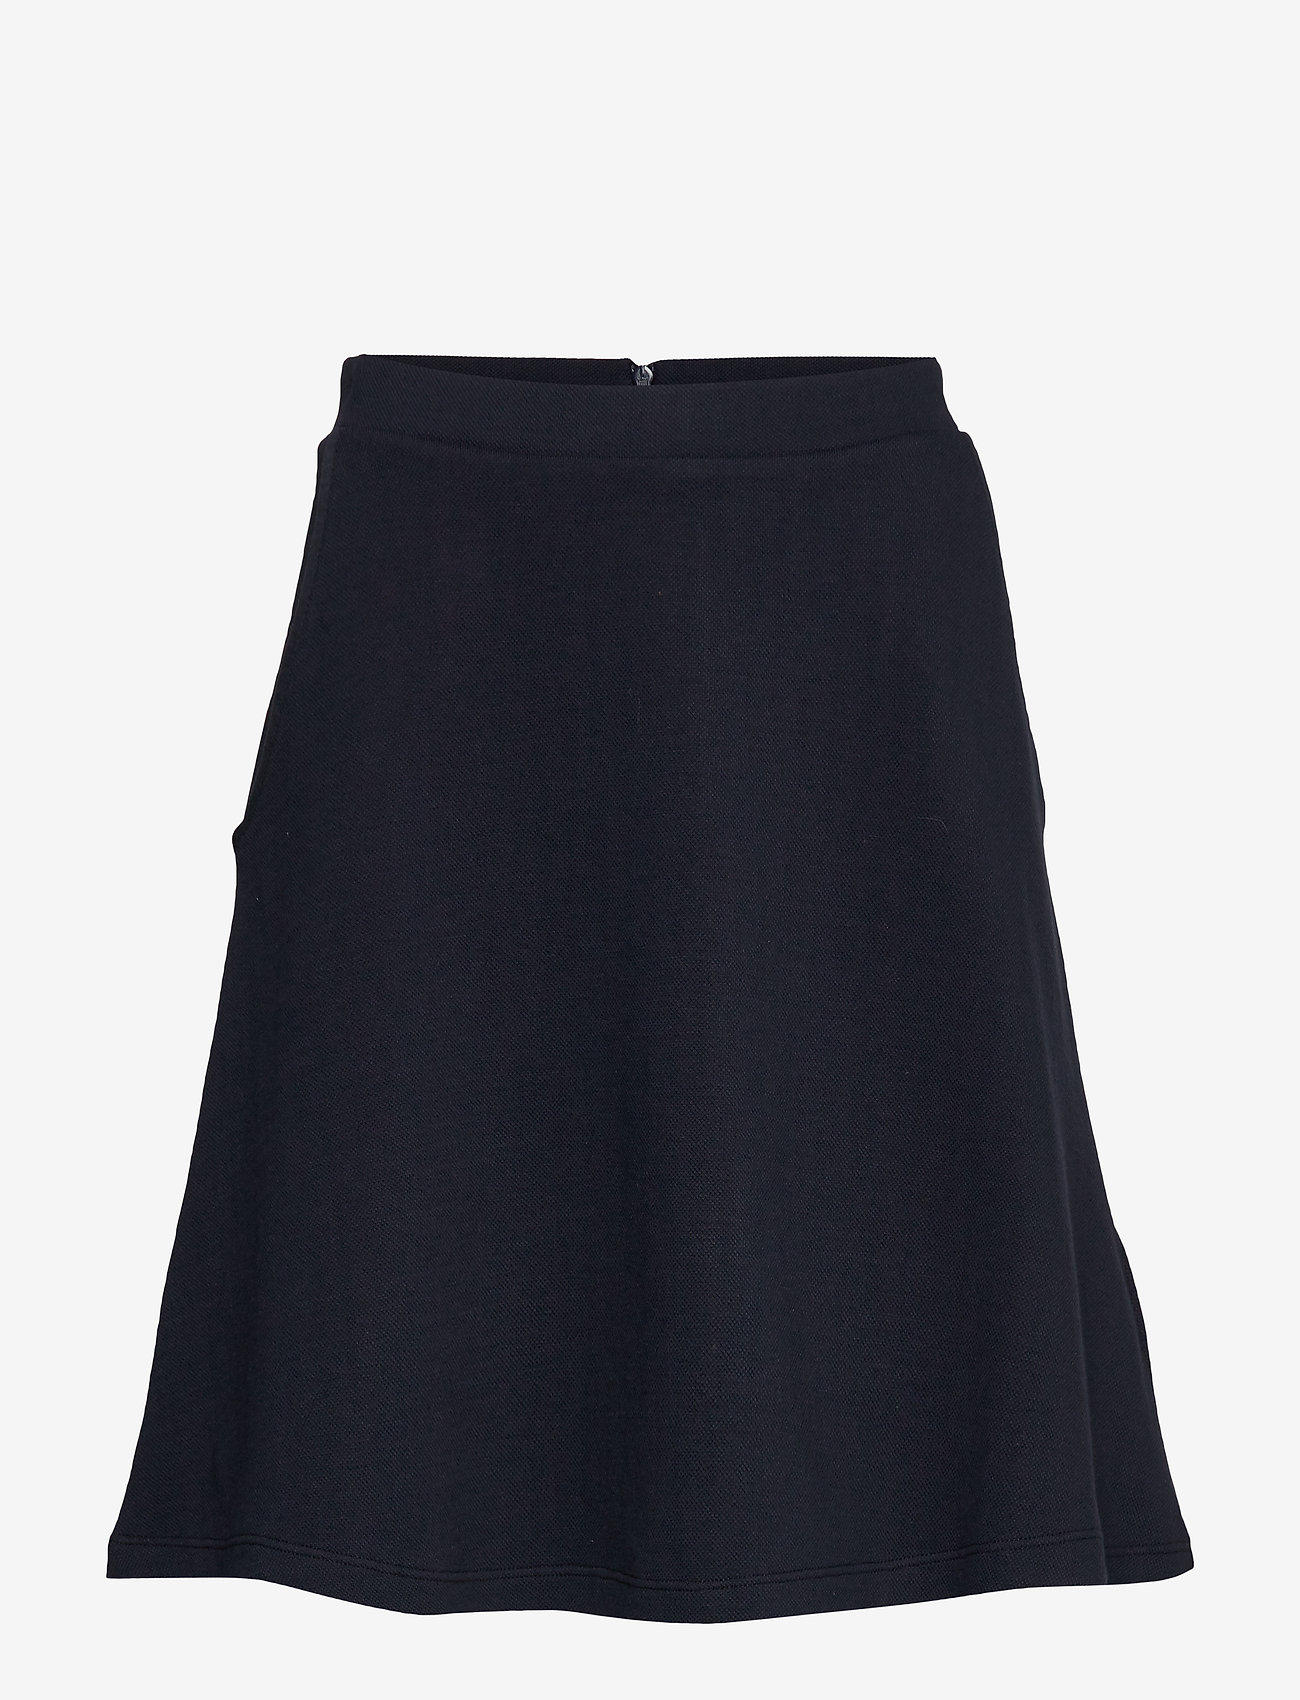 Esprit Casual - Skirts knitted - short skirts - navy - 0